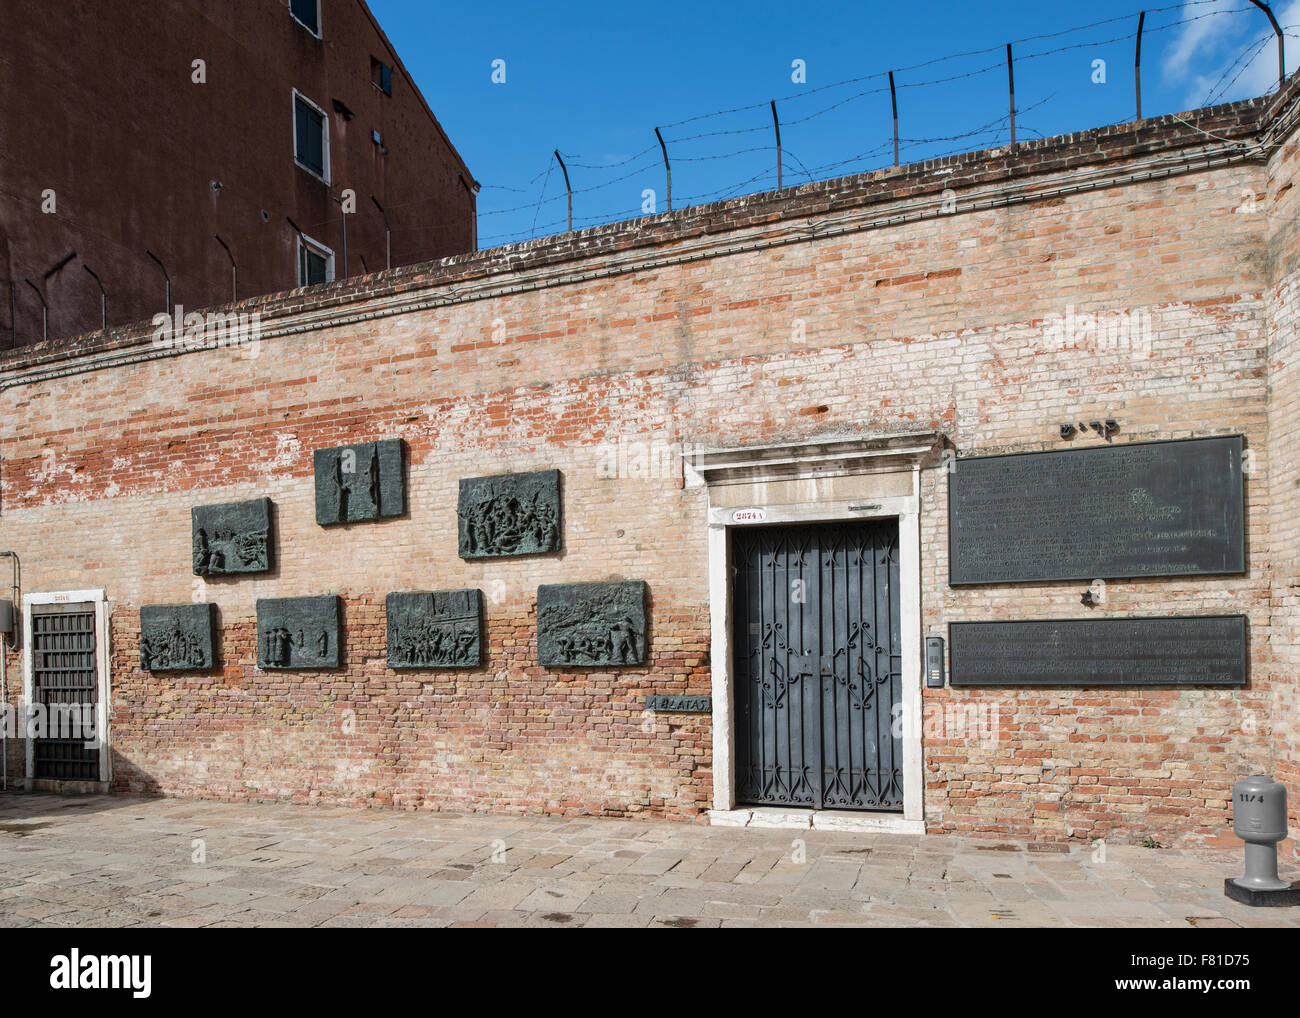 Memorial wall, Campo Ghetto Nuovo, Ghetto, Jewish ghetto from the 16th century, Cannaregio, Venice, Veneto, Italy - Stock Image